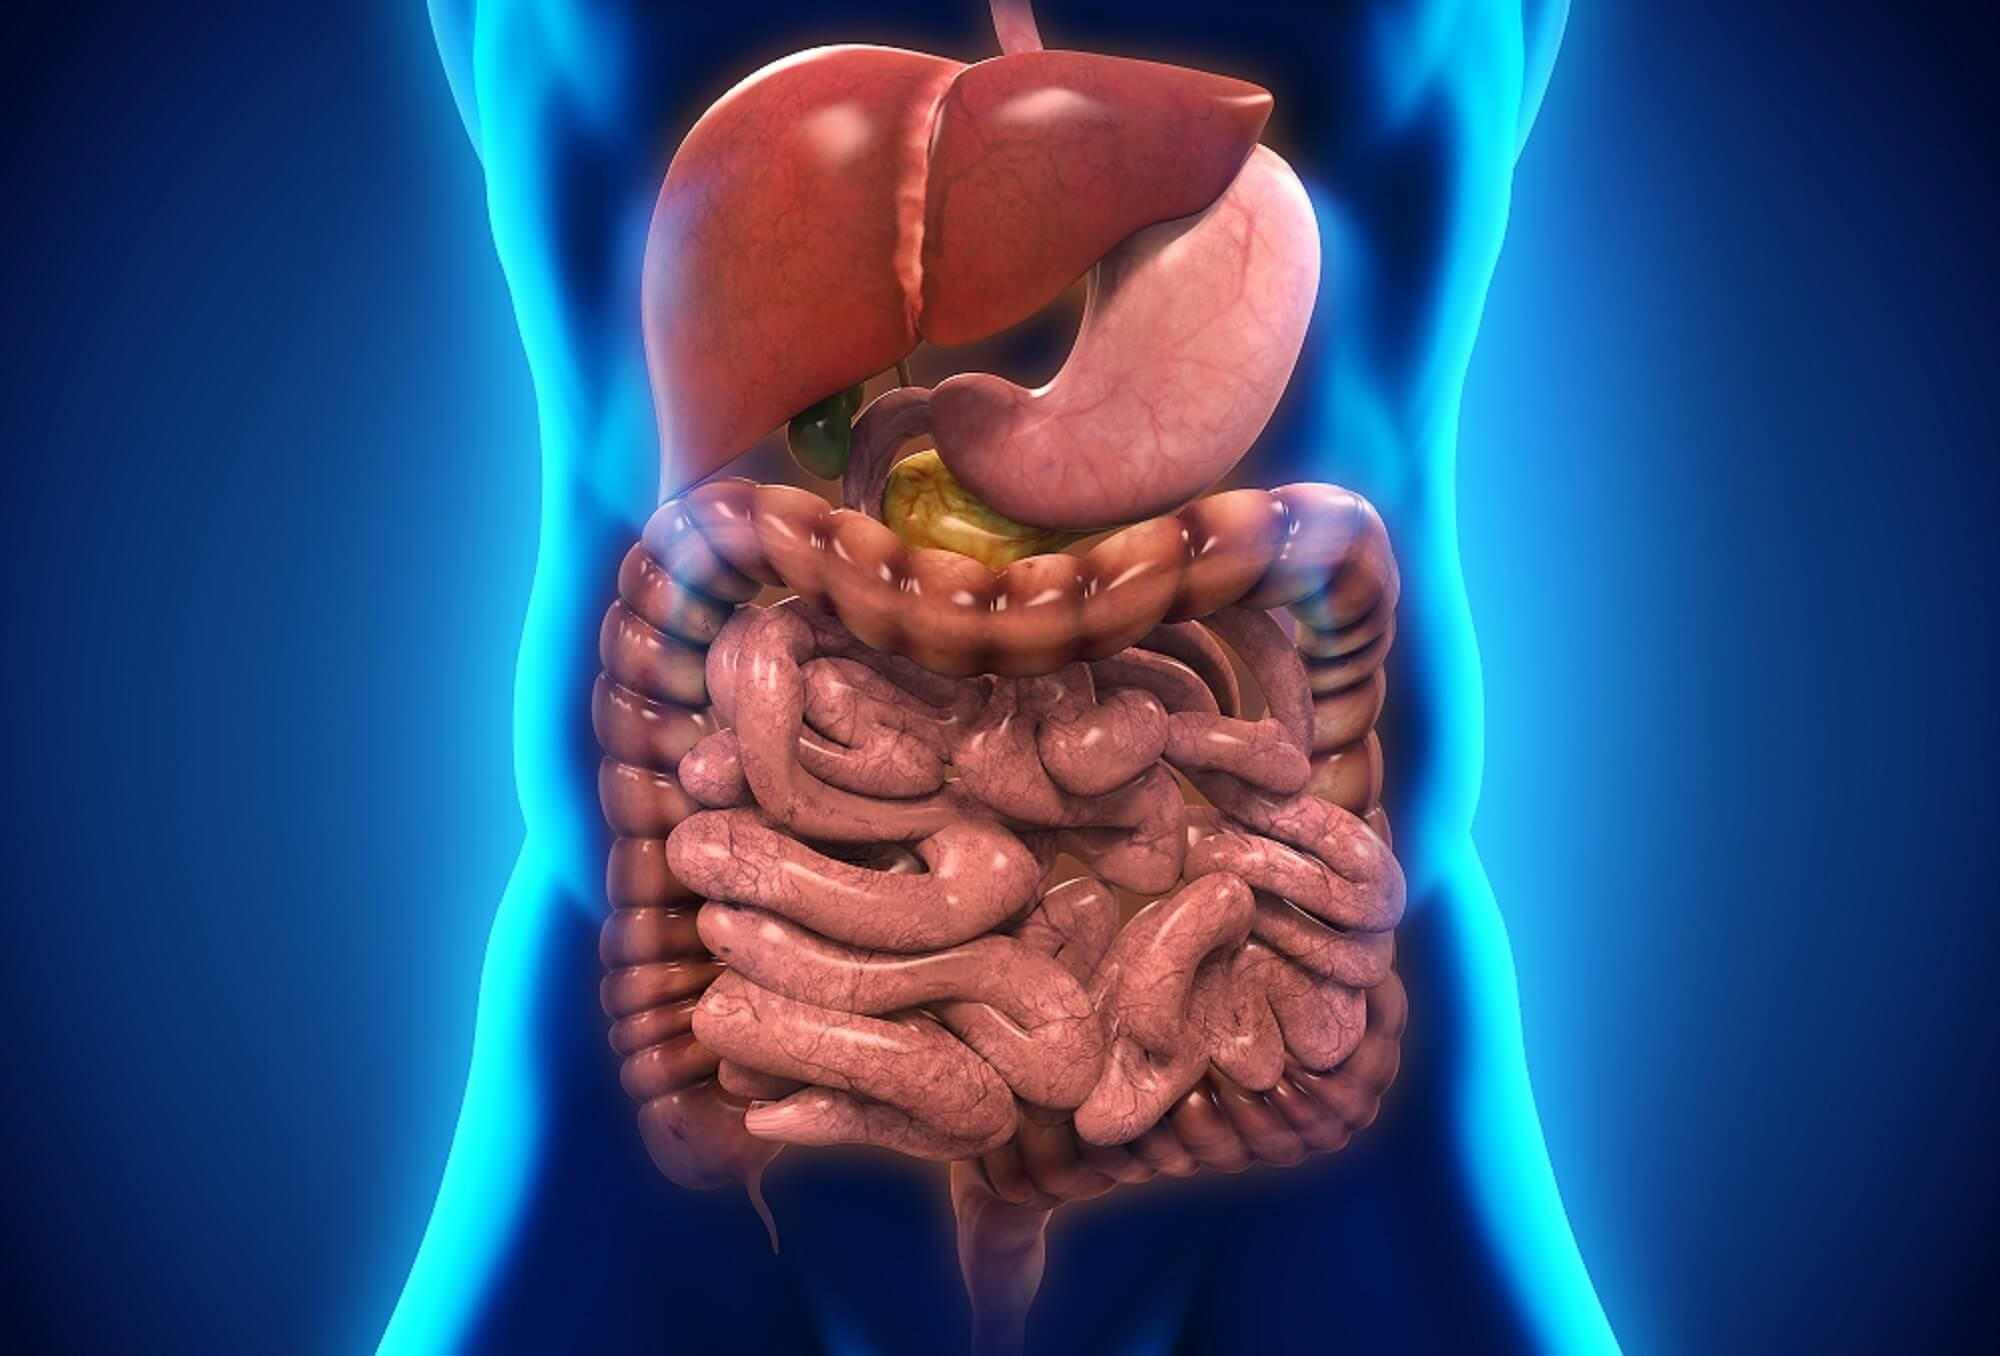 Severe Gastrointestinal Disease in Early Systemic Sclerosis Linked to Increased Morbidity, Mortality